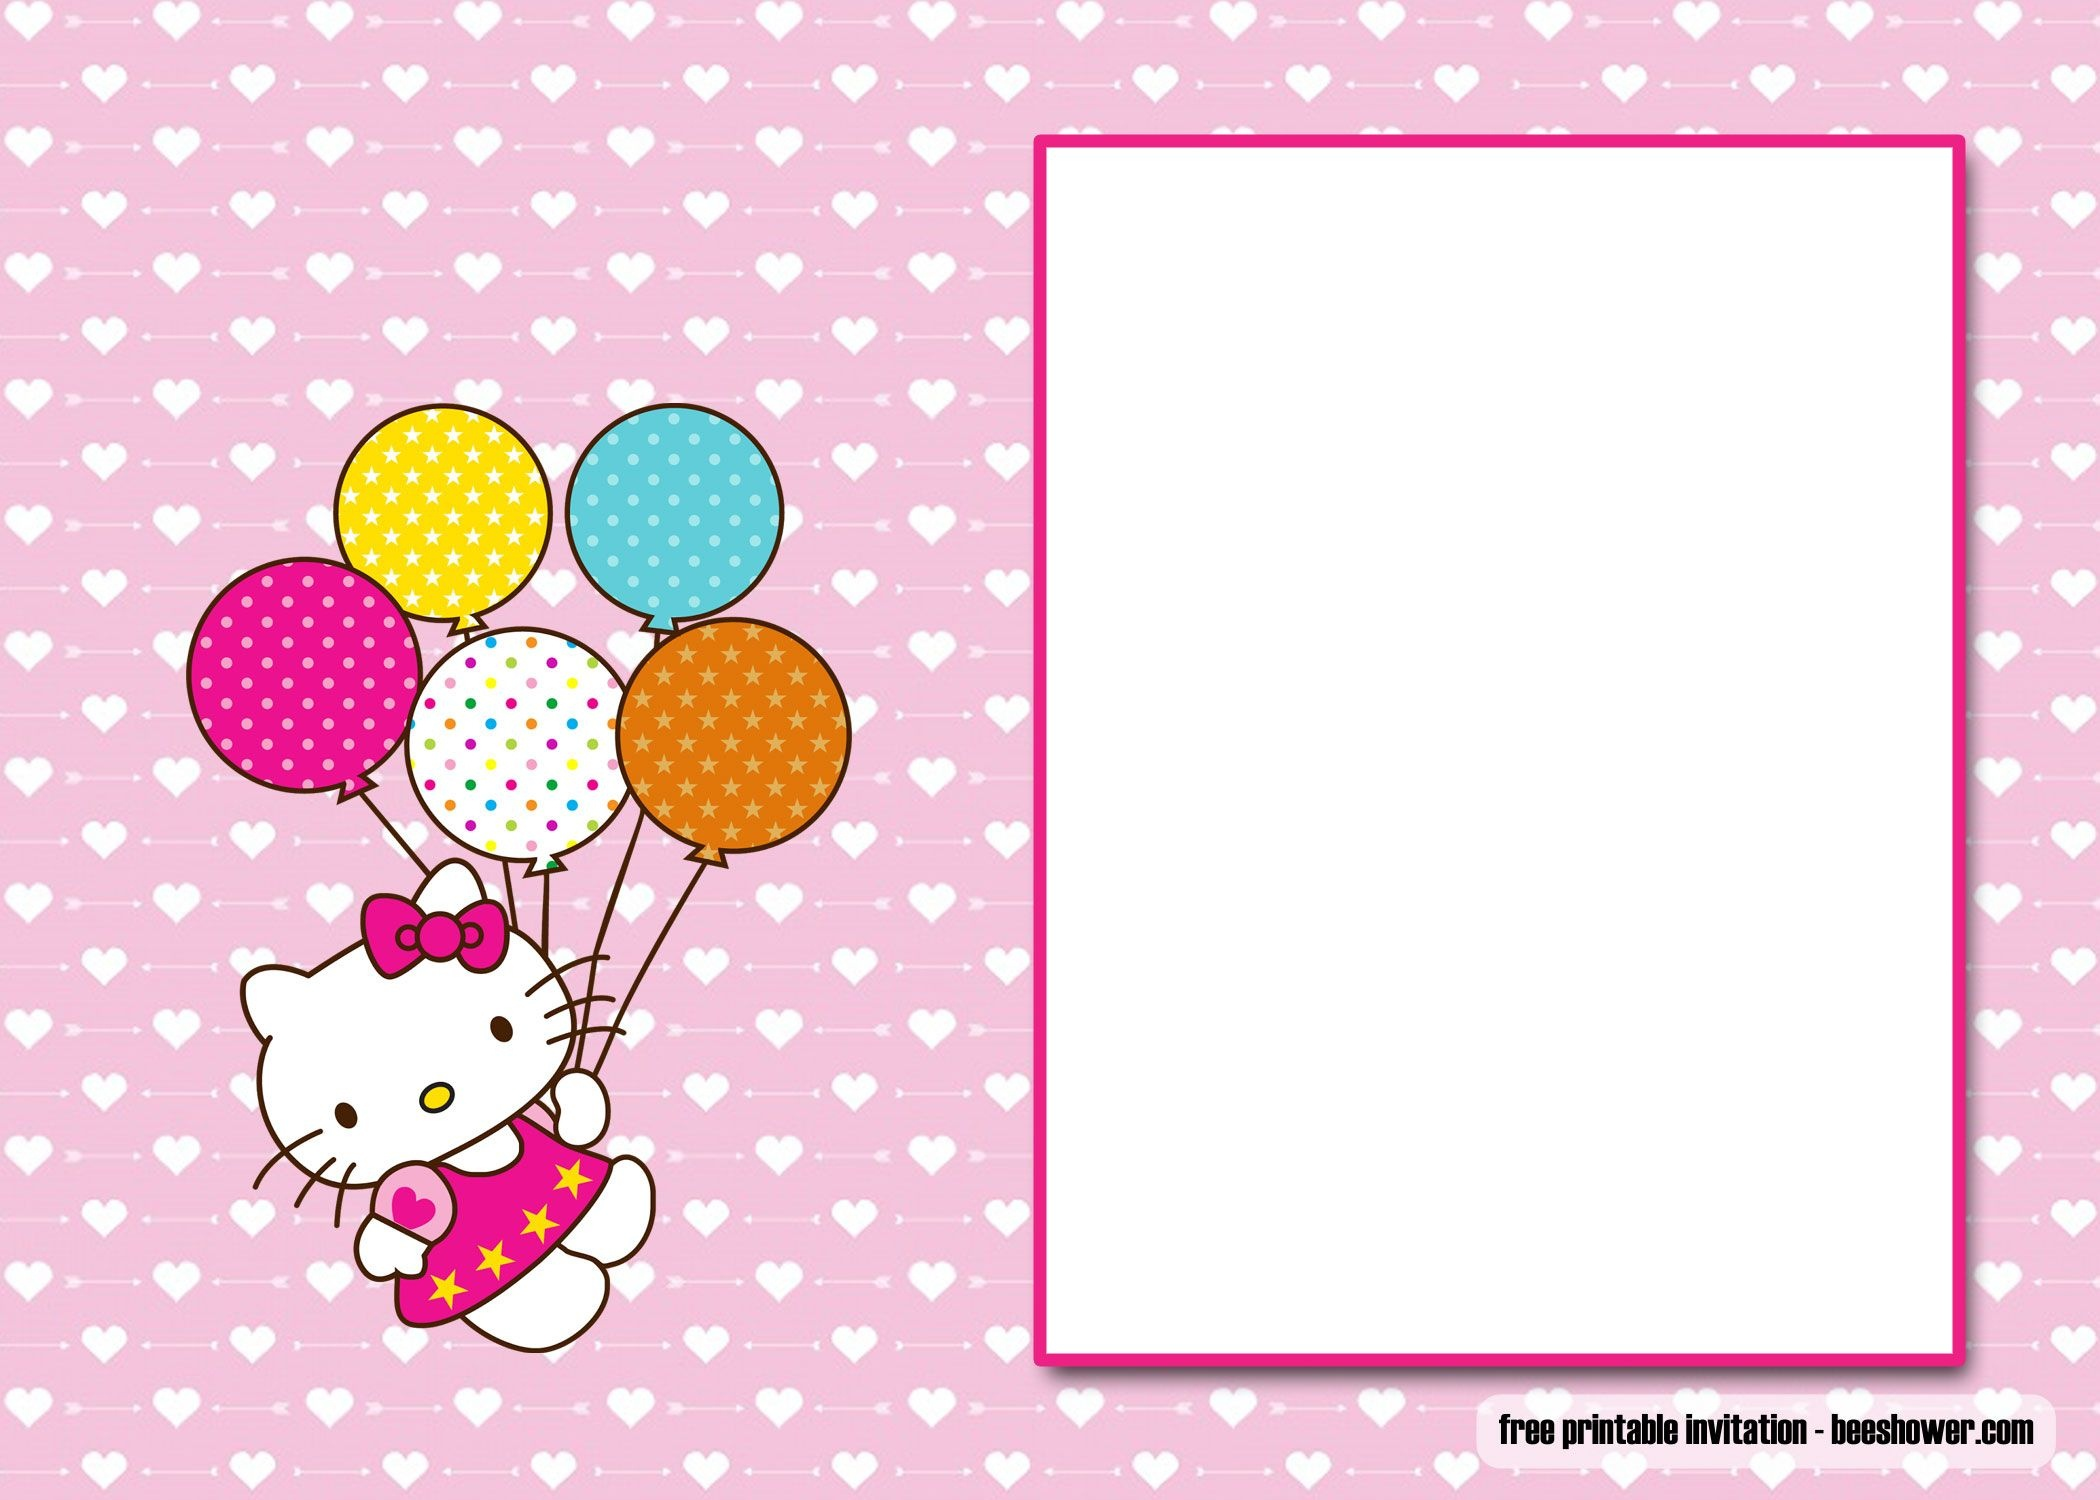 Awesome Free Perfect Hello Kitty Baby Shower Invitations   Beeshower - Free Printable Hello Kitty Baby Shower Invitations